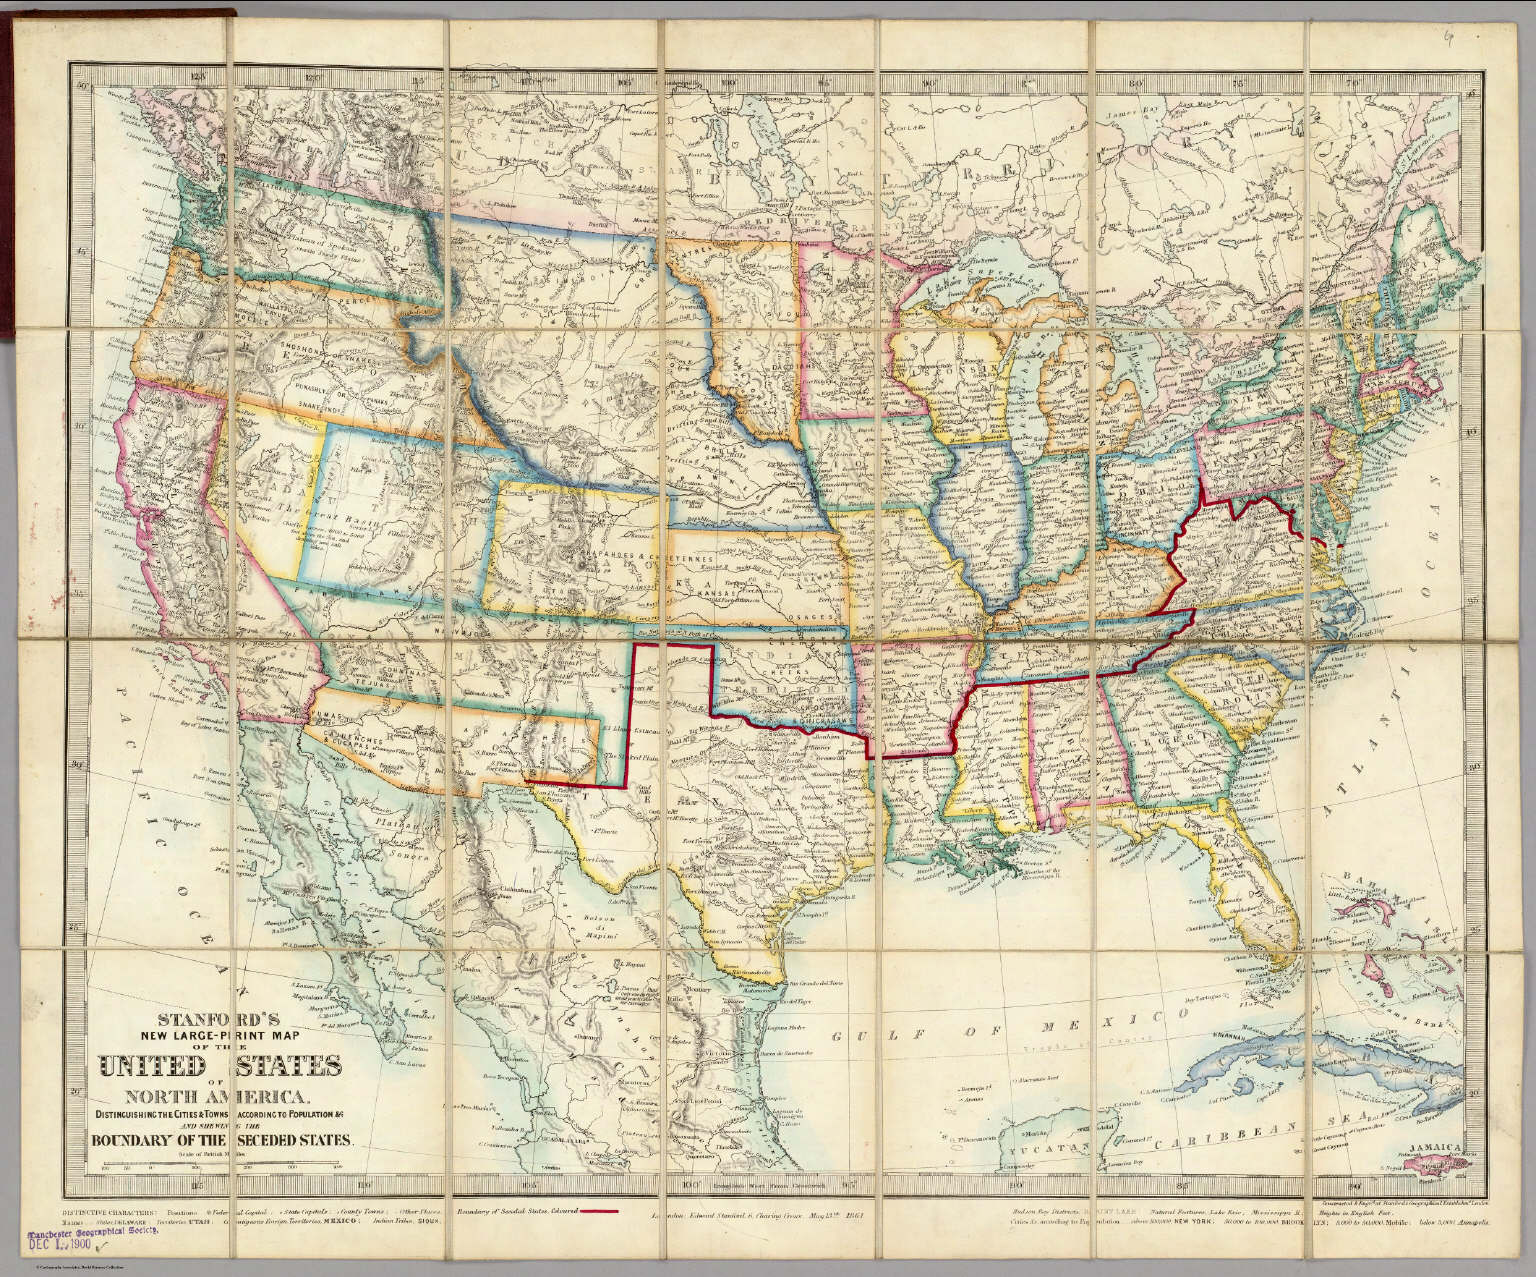 United States Of North America. - David Rumsey Historical Map Collection